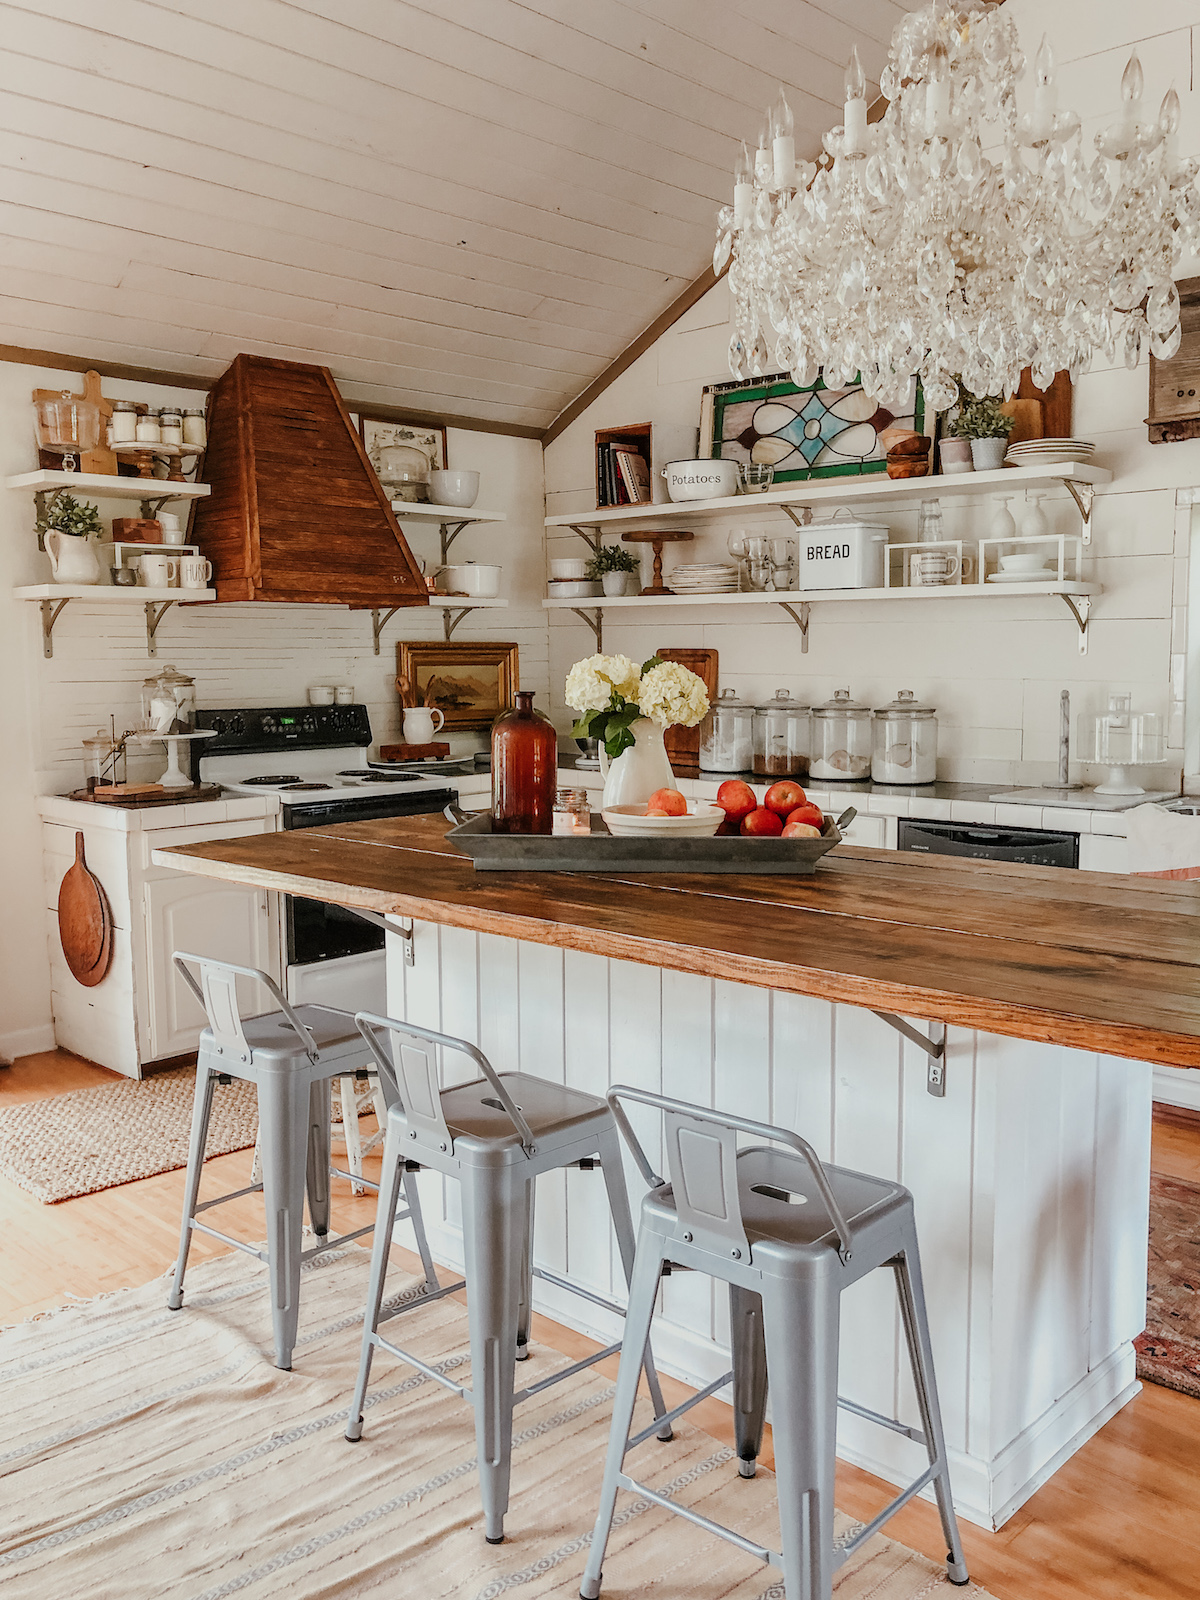 Beautiful farmhouse kitchen with shiplap, open shelves, crystal chandelier and DIY wood range hood kellyelko.com #farmhousedecor #farmhousekitchen #falldecor #kitchen #kitchendecor #whitekitchen #shiplapkitchen #vintagedecor